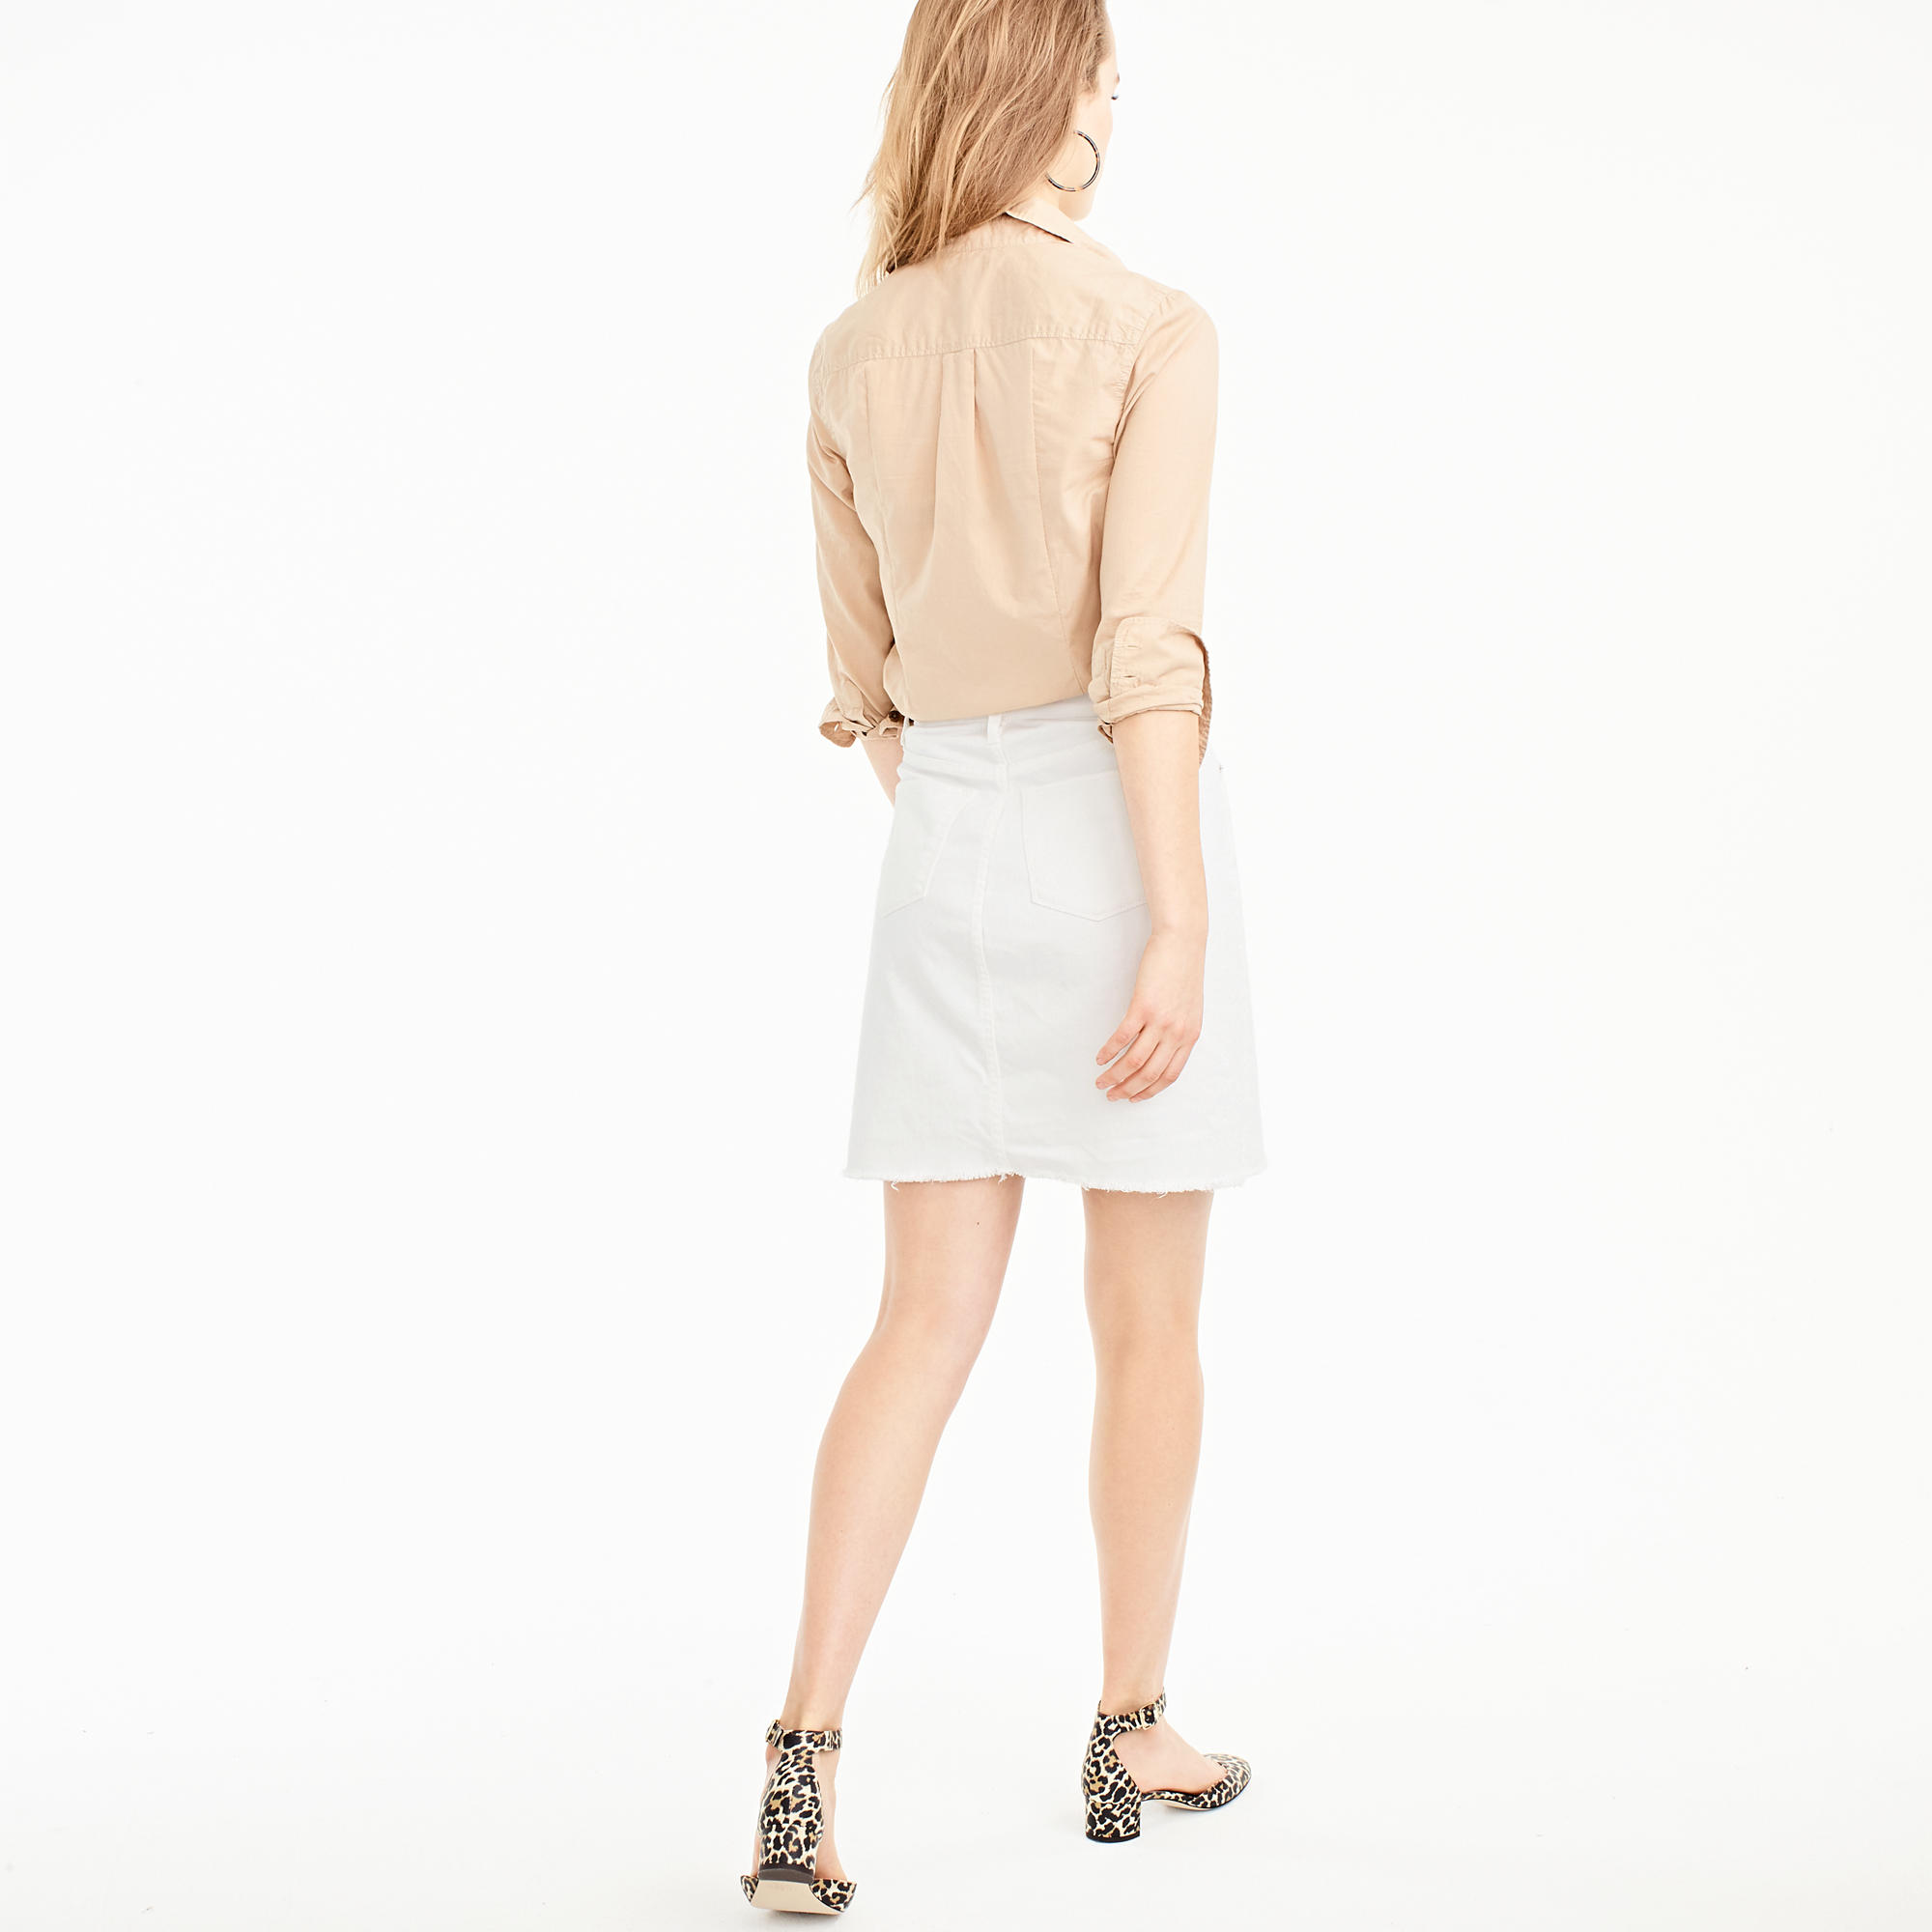 White denim skirt with raw hem : Women denim | J.Crew